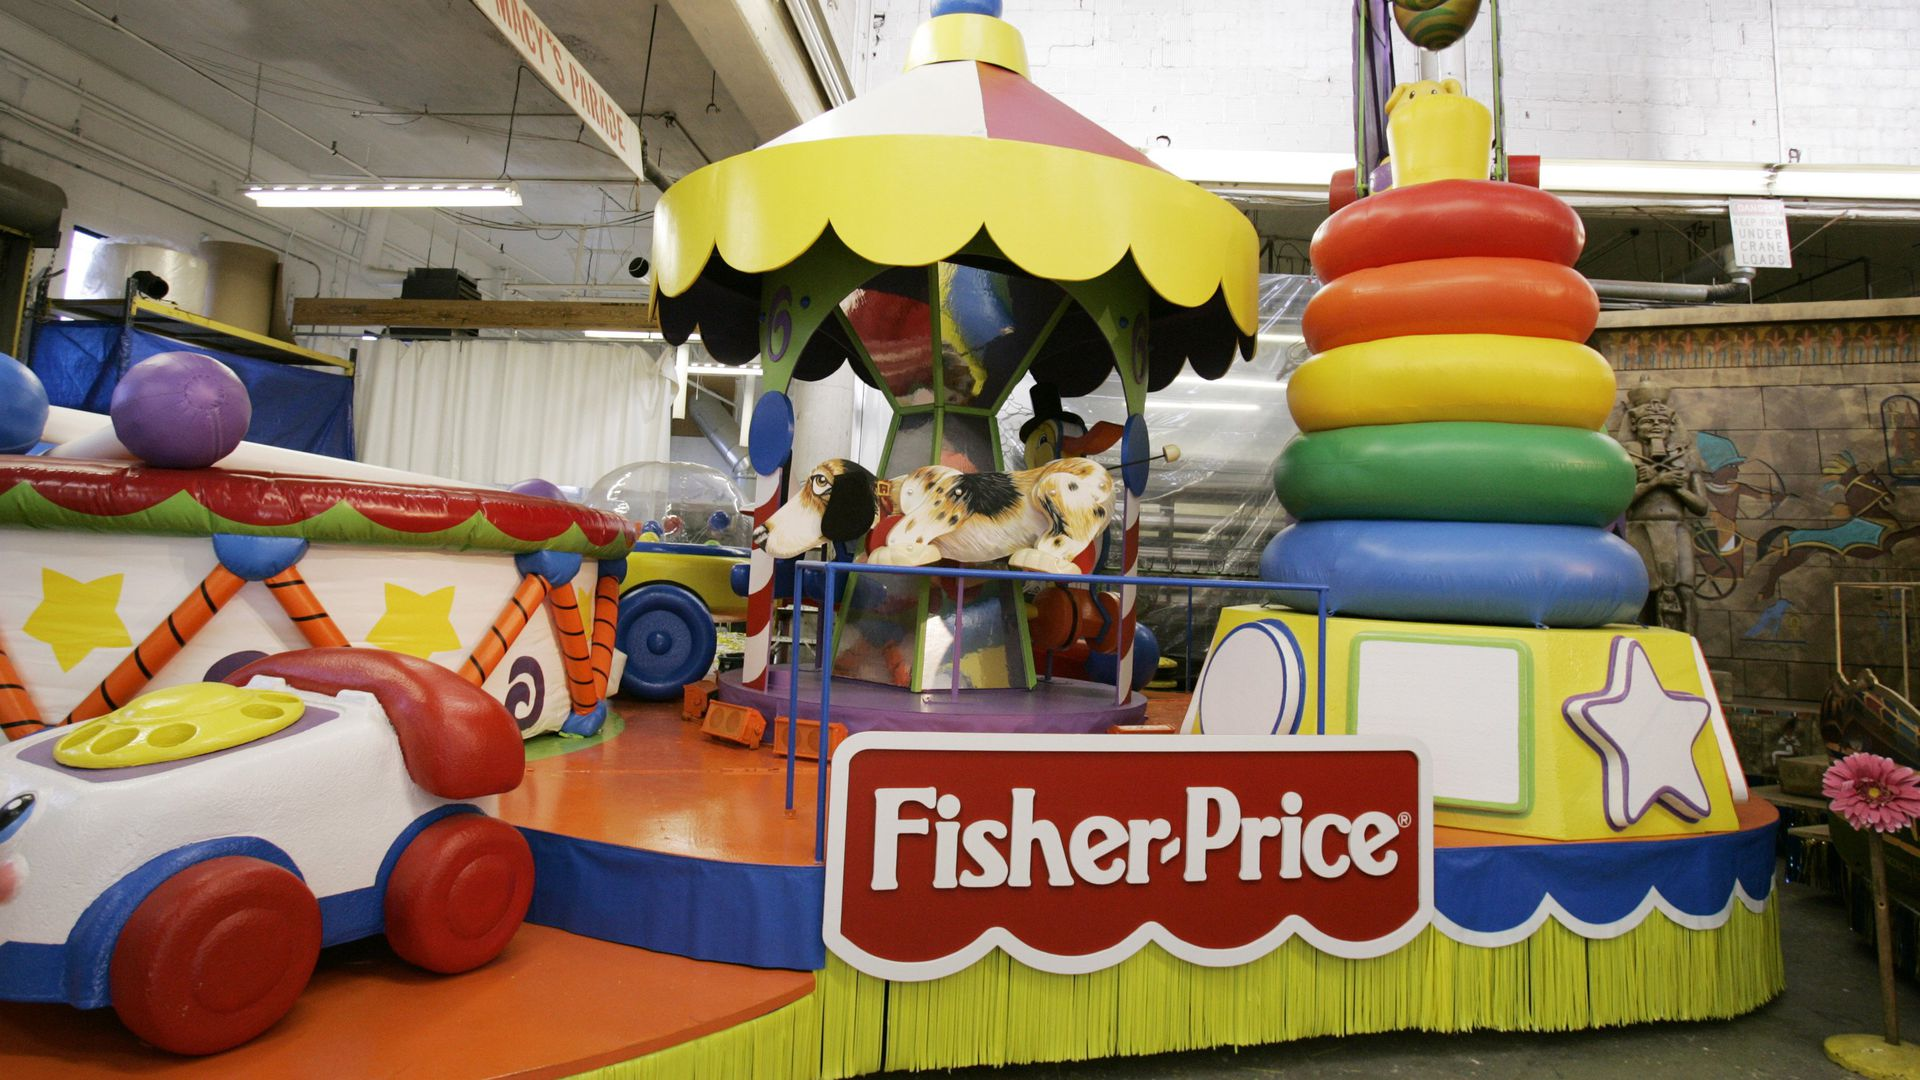 Fisher-Price Macy's Day float